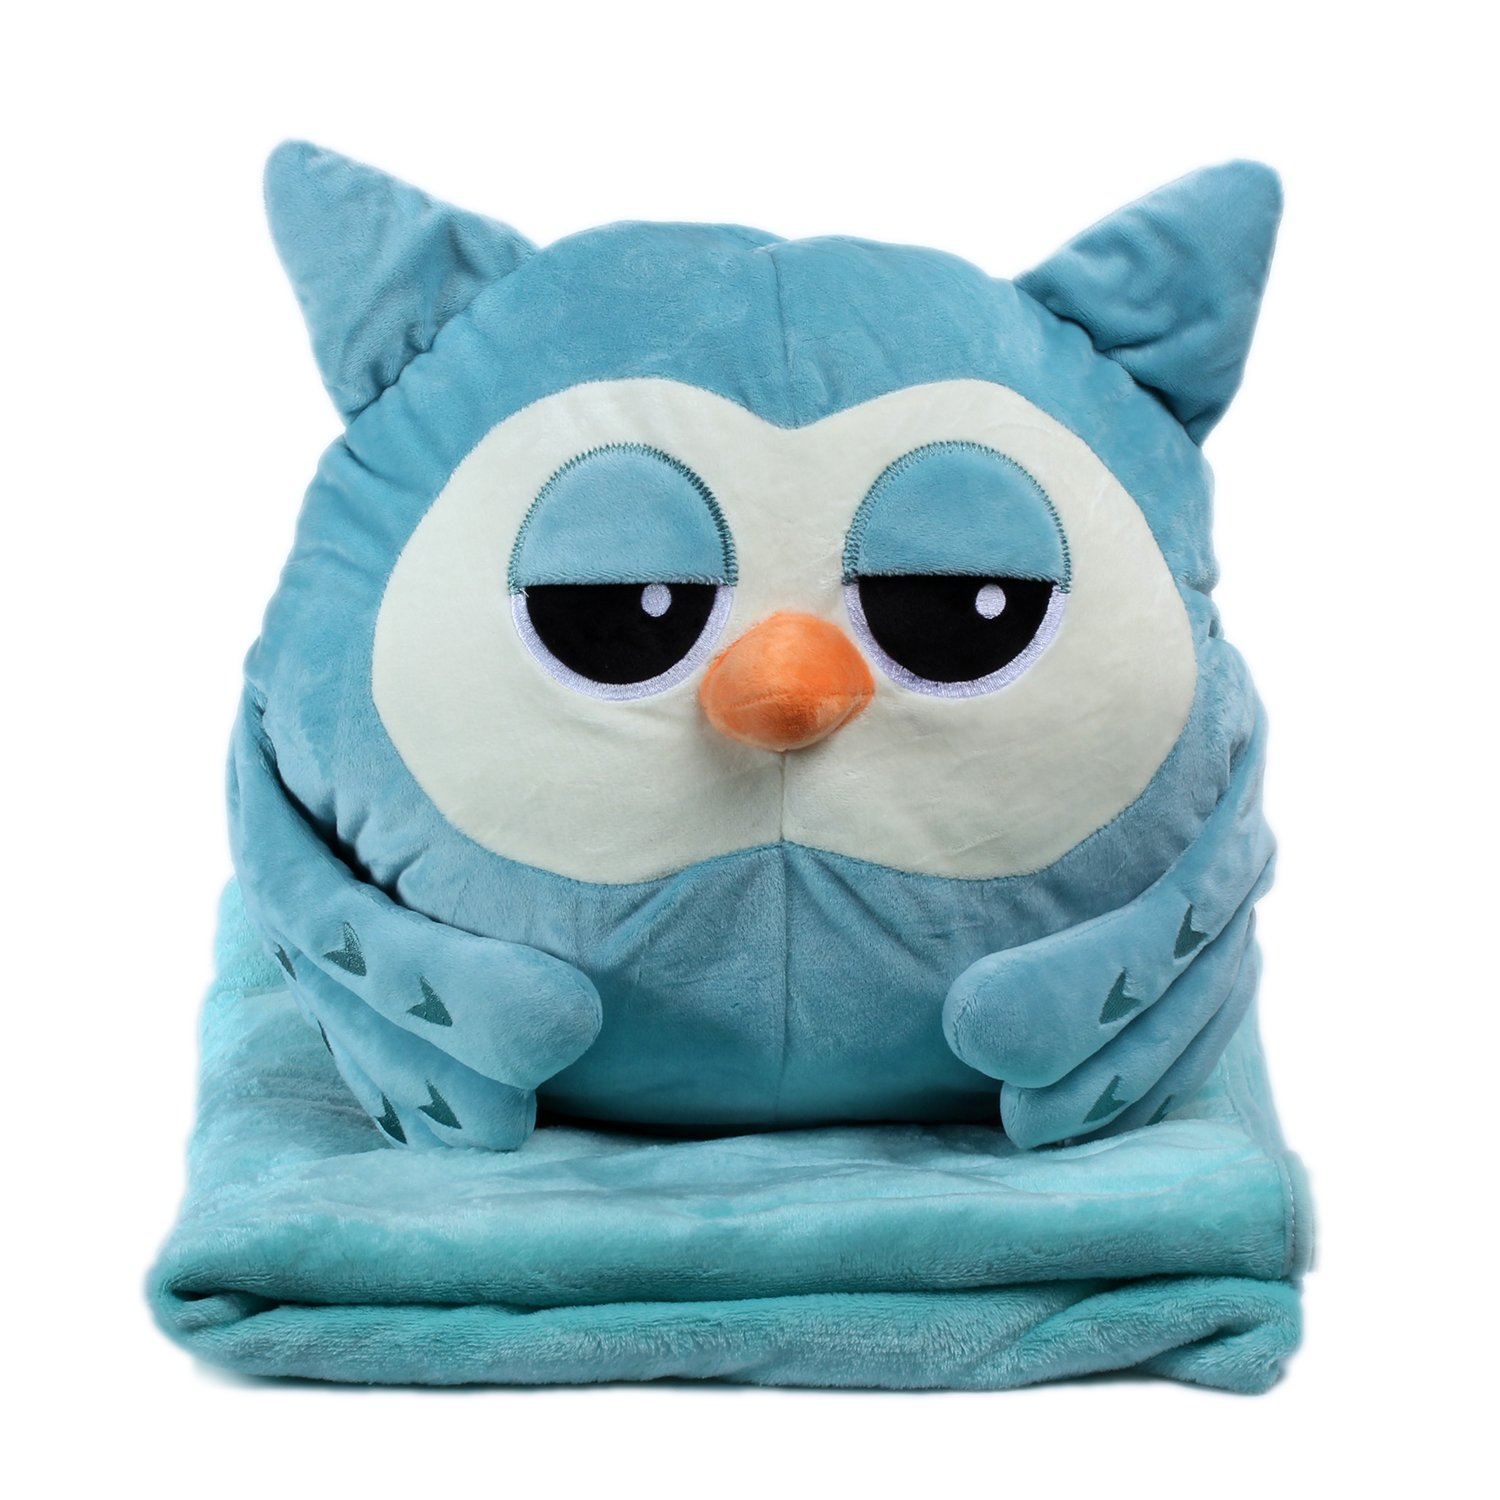 Alpacasso 3 In 1 Cute Cartoon Plush Stuffed Animal Toys Throw Pillow Blanket Set with Hand Warmer Design. (Blue Owl) by Alpacasso (Image #1)